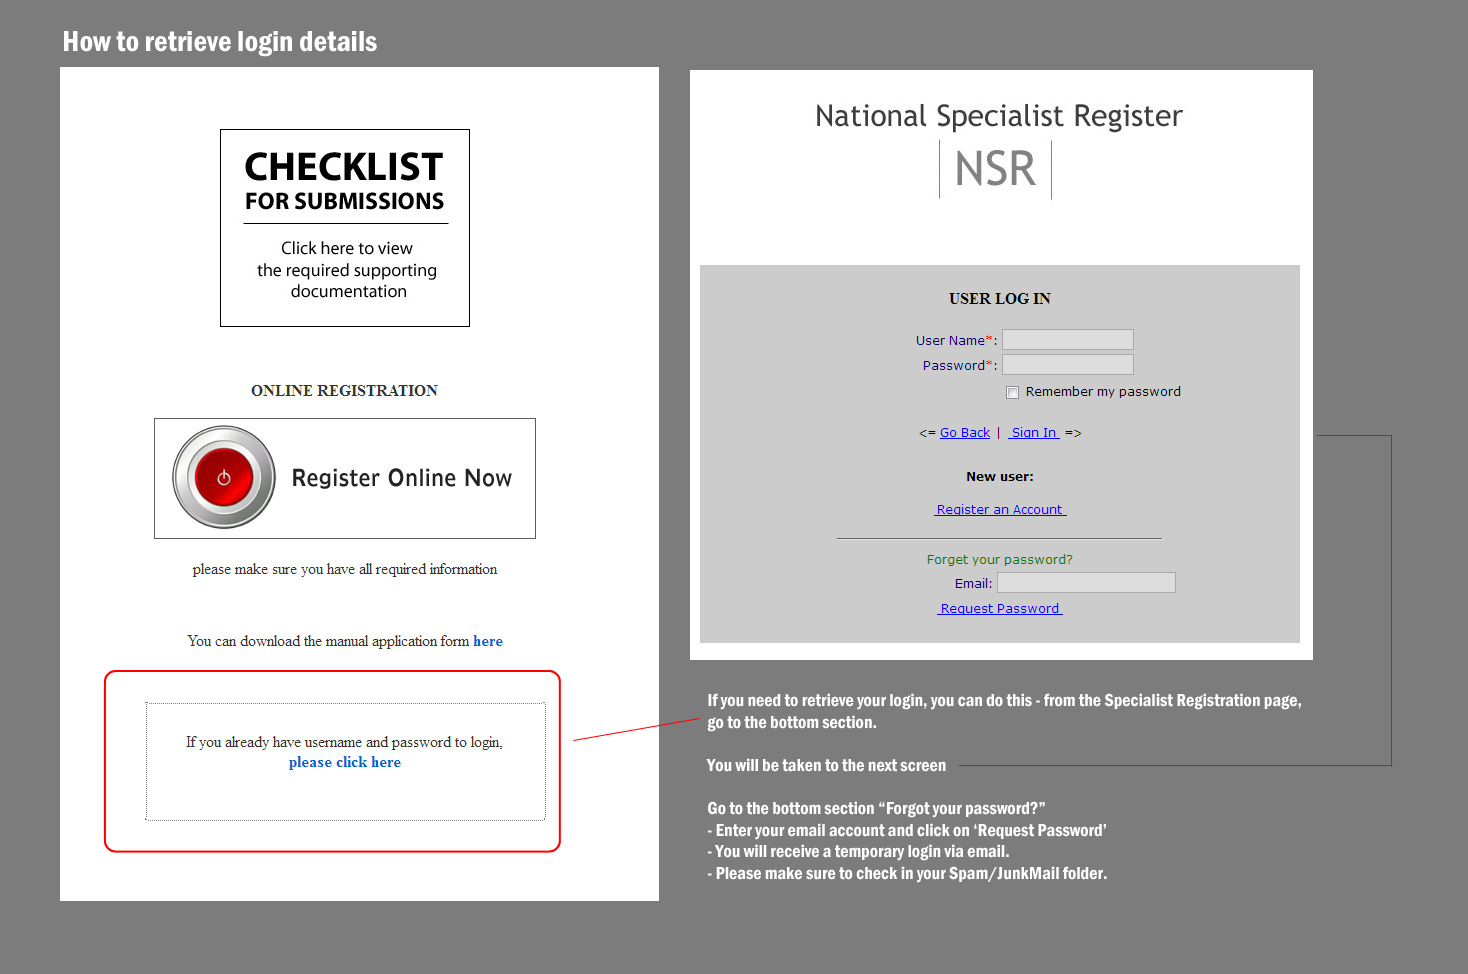 National Specialist Register of Malaysia